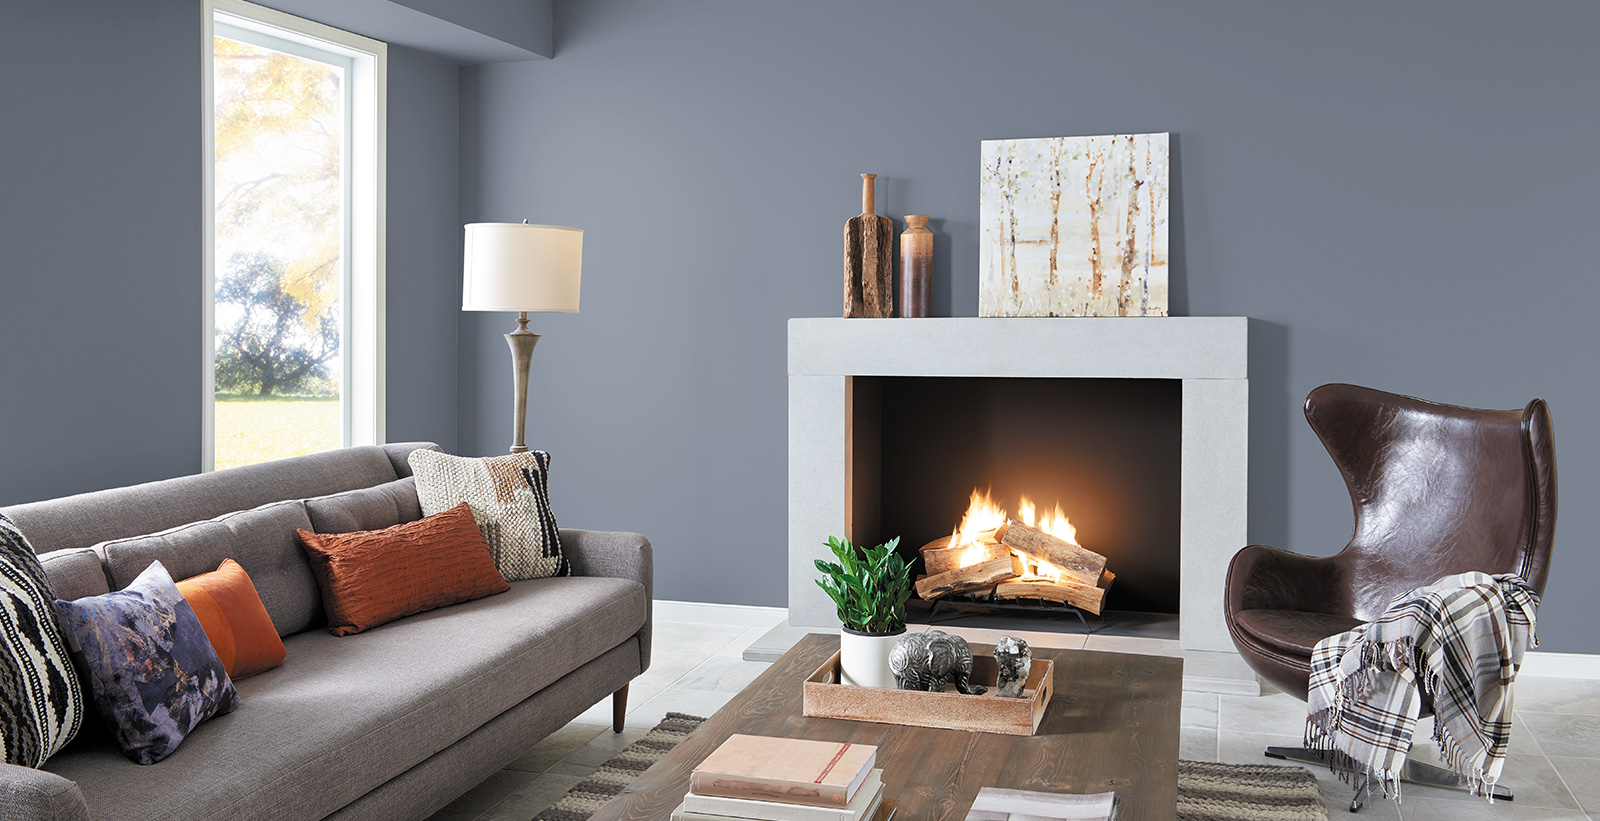 Casual styled living room with grayish blue on walls, white on trim, light gray couch and wood coffee table